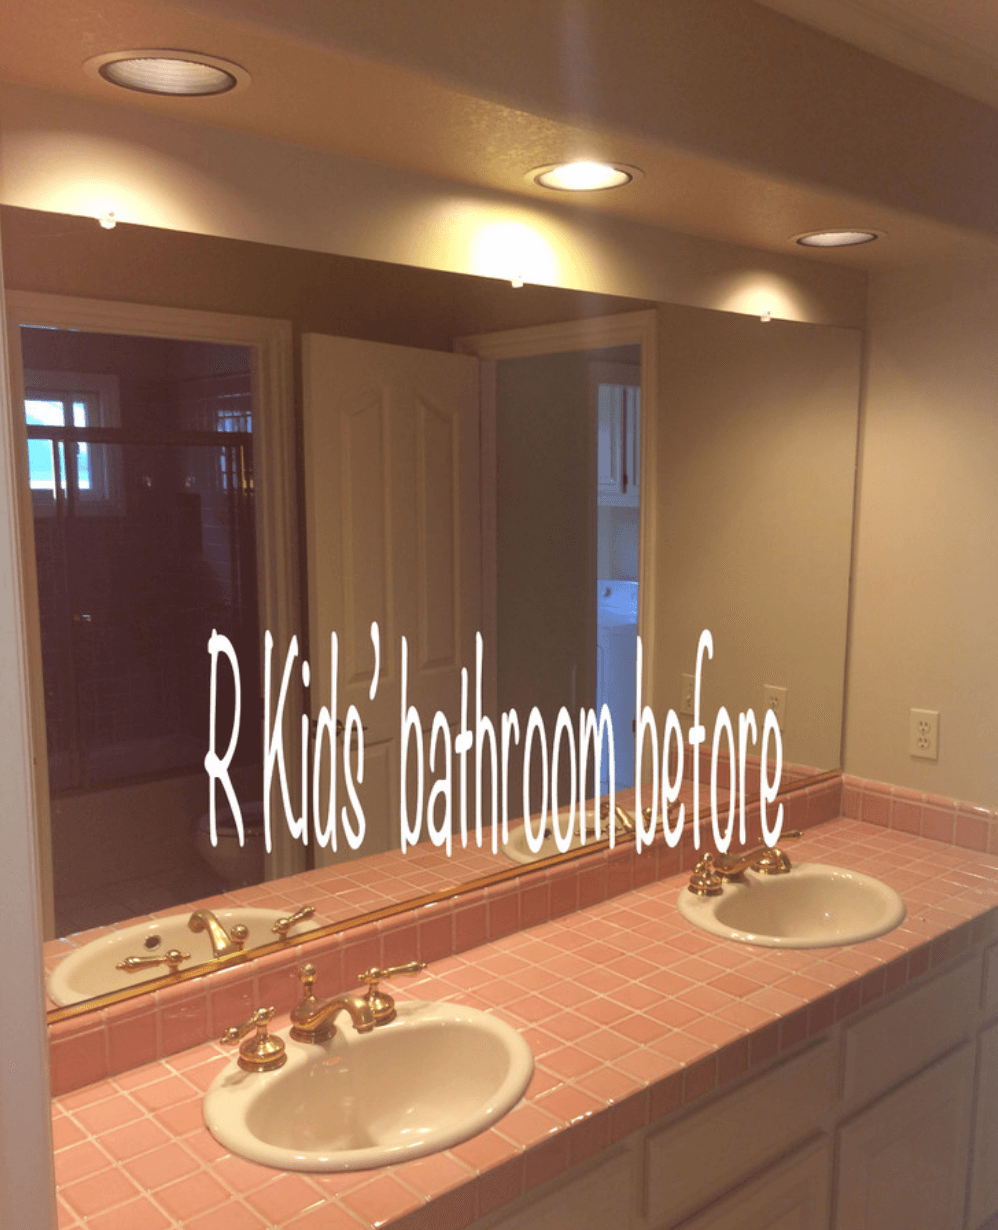 Project Guru Interior Design concord kids bathroom remodel before.png